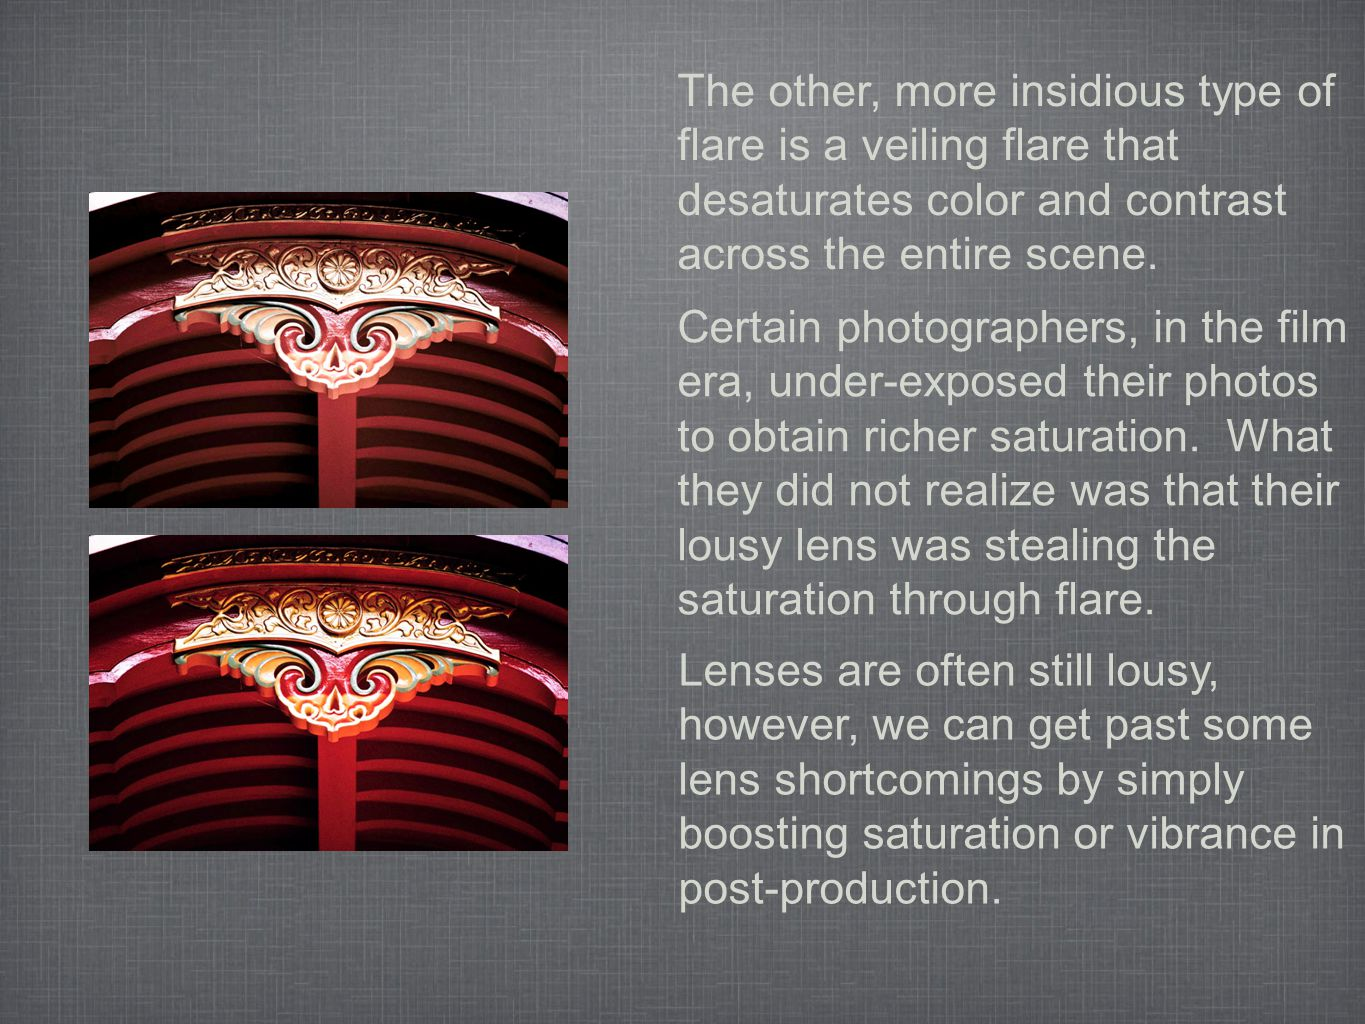 The other, more insidious type of flare is a veiling flare that desaturates color and contrast across the entire scene. Certain photographers, in the